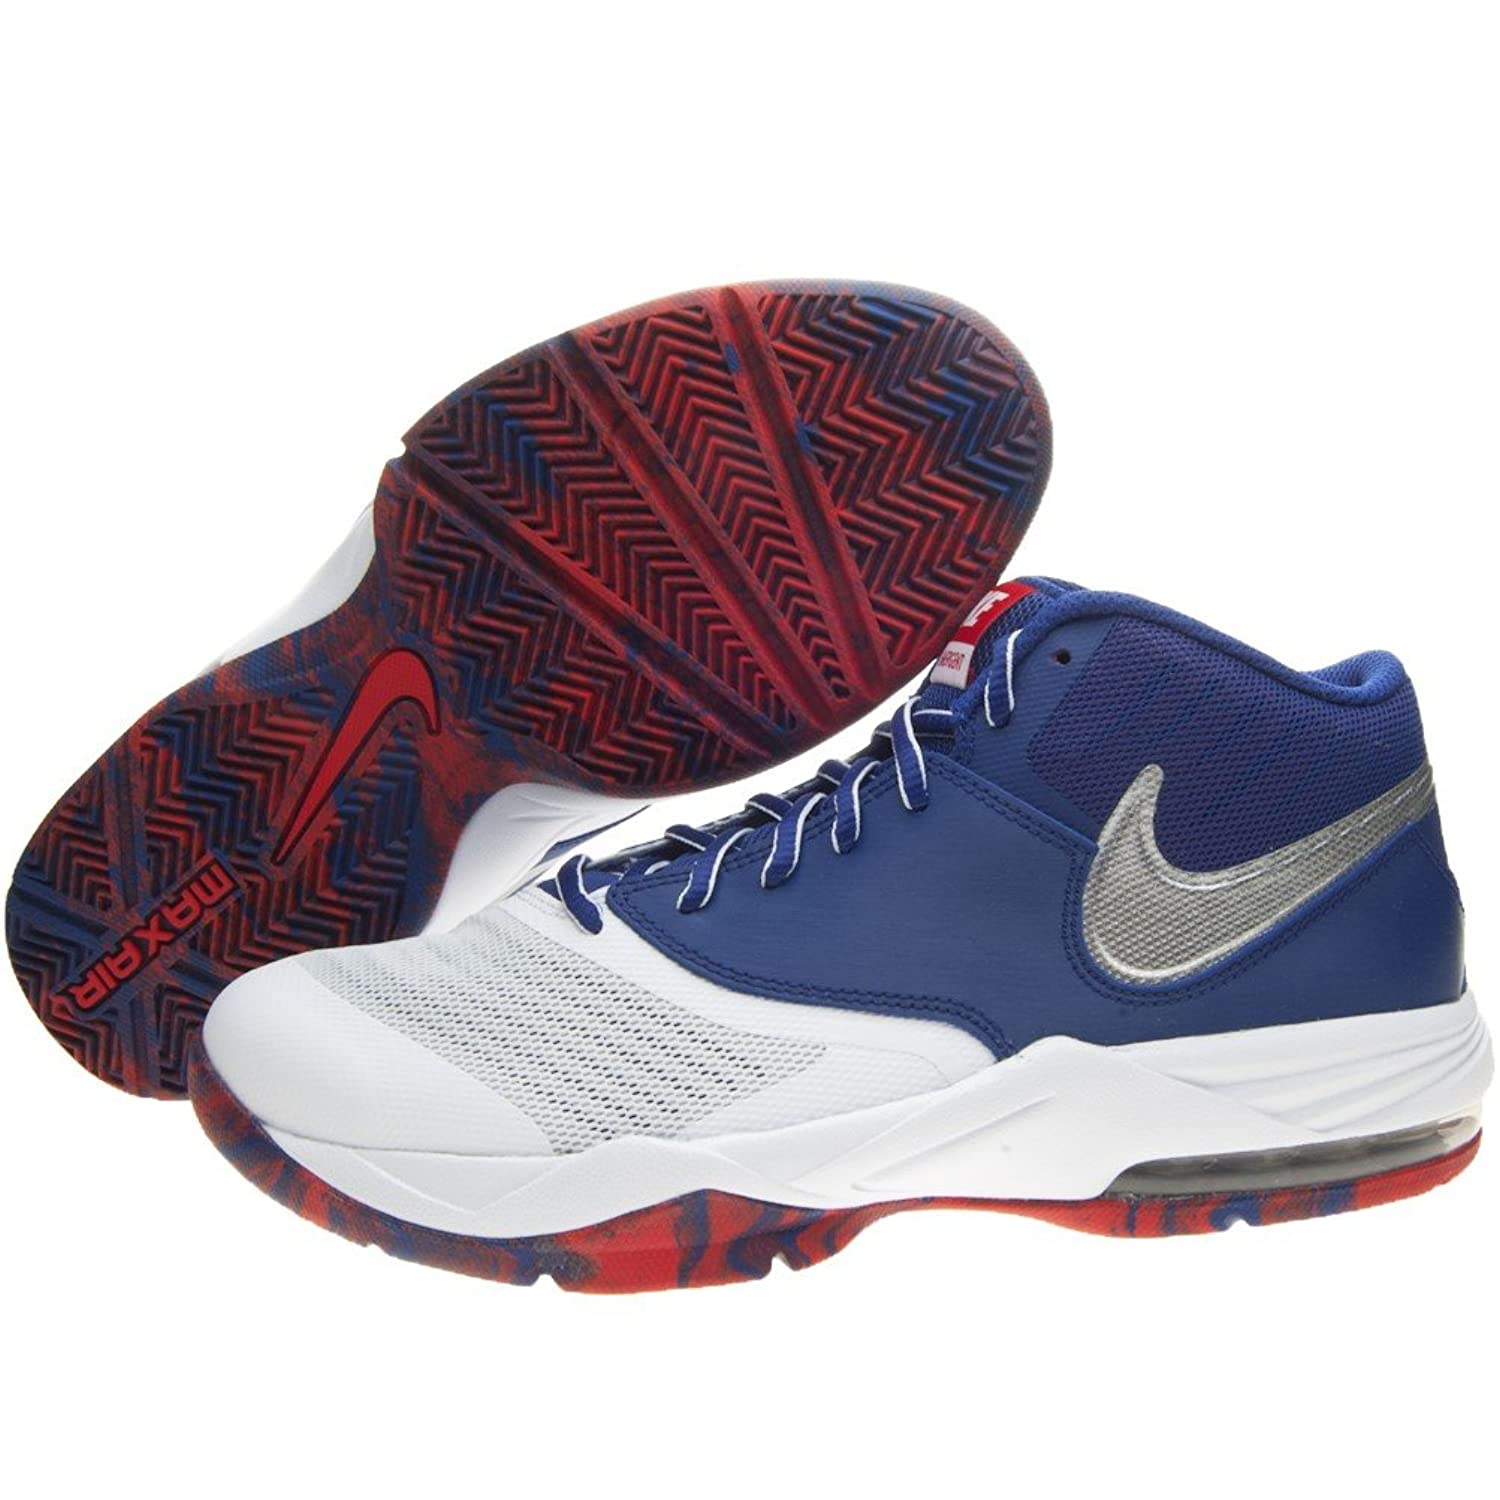 Nike Men White & Blue Air Max Emergent Basketball Shoes (7 UK/India): Buy  Online at Low Prices in India - Amazon.in